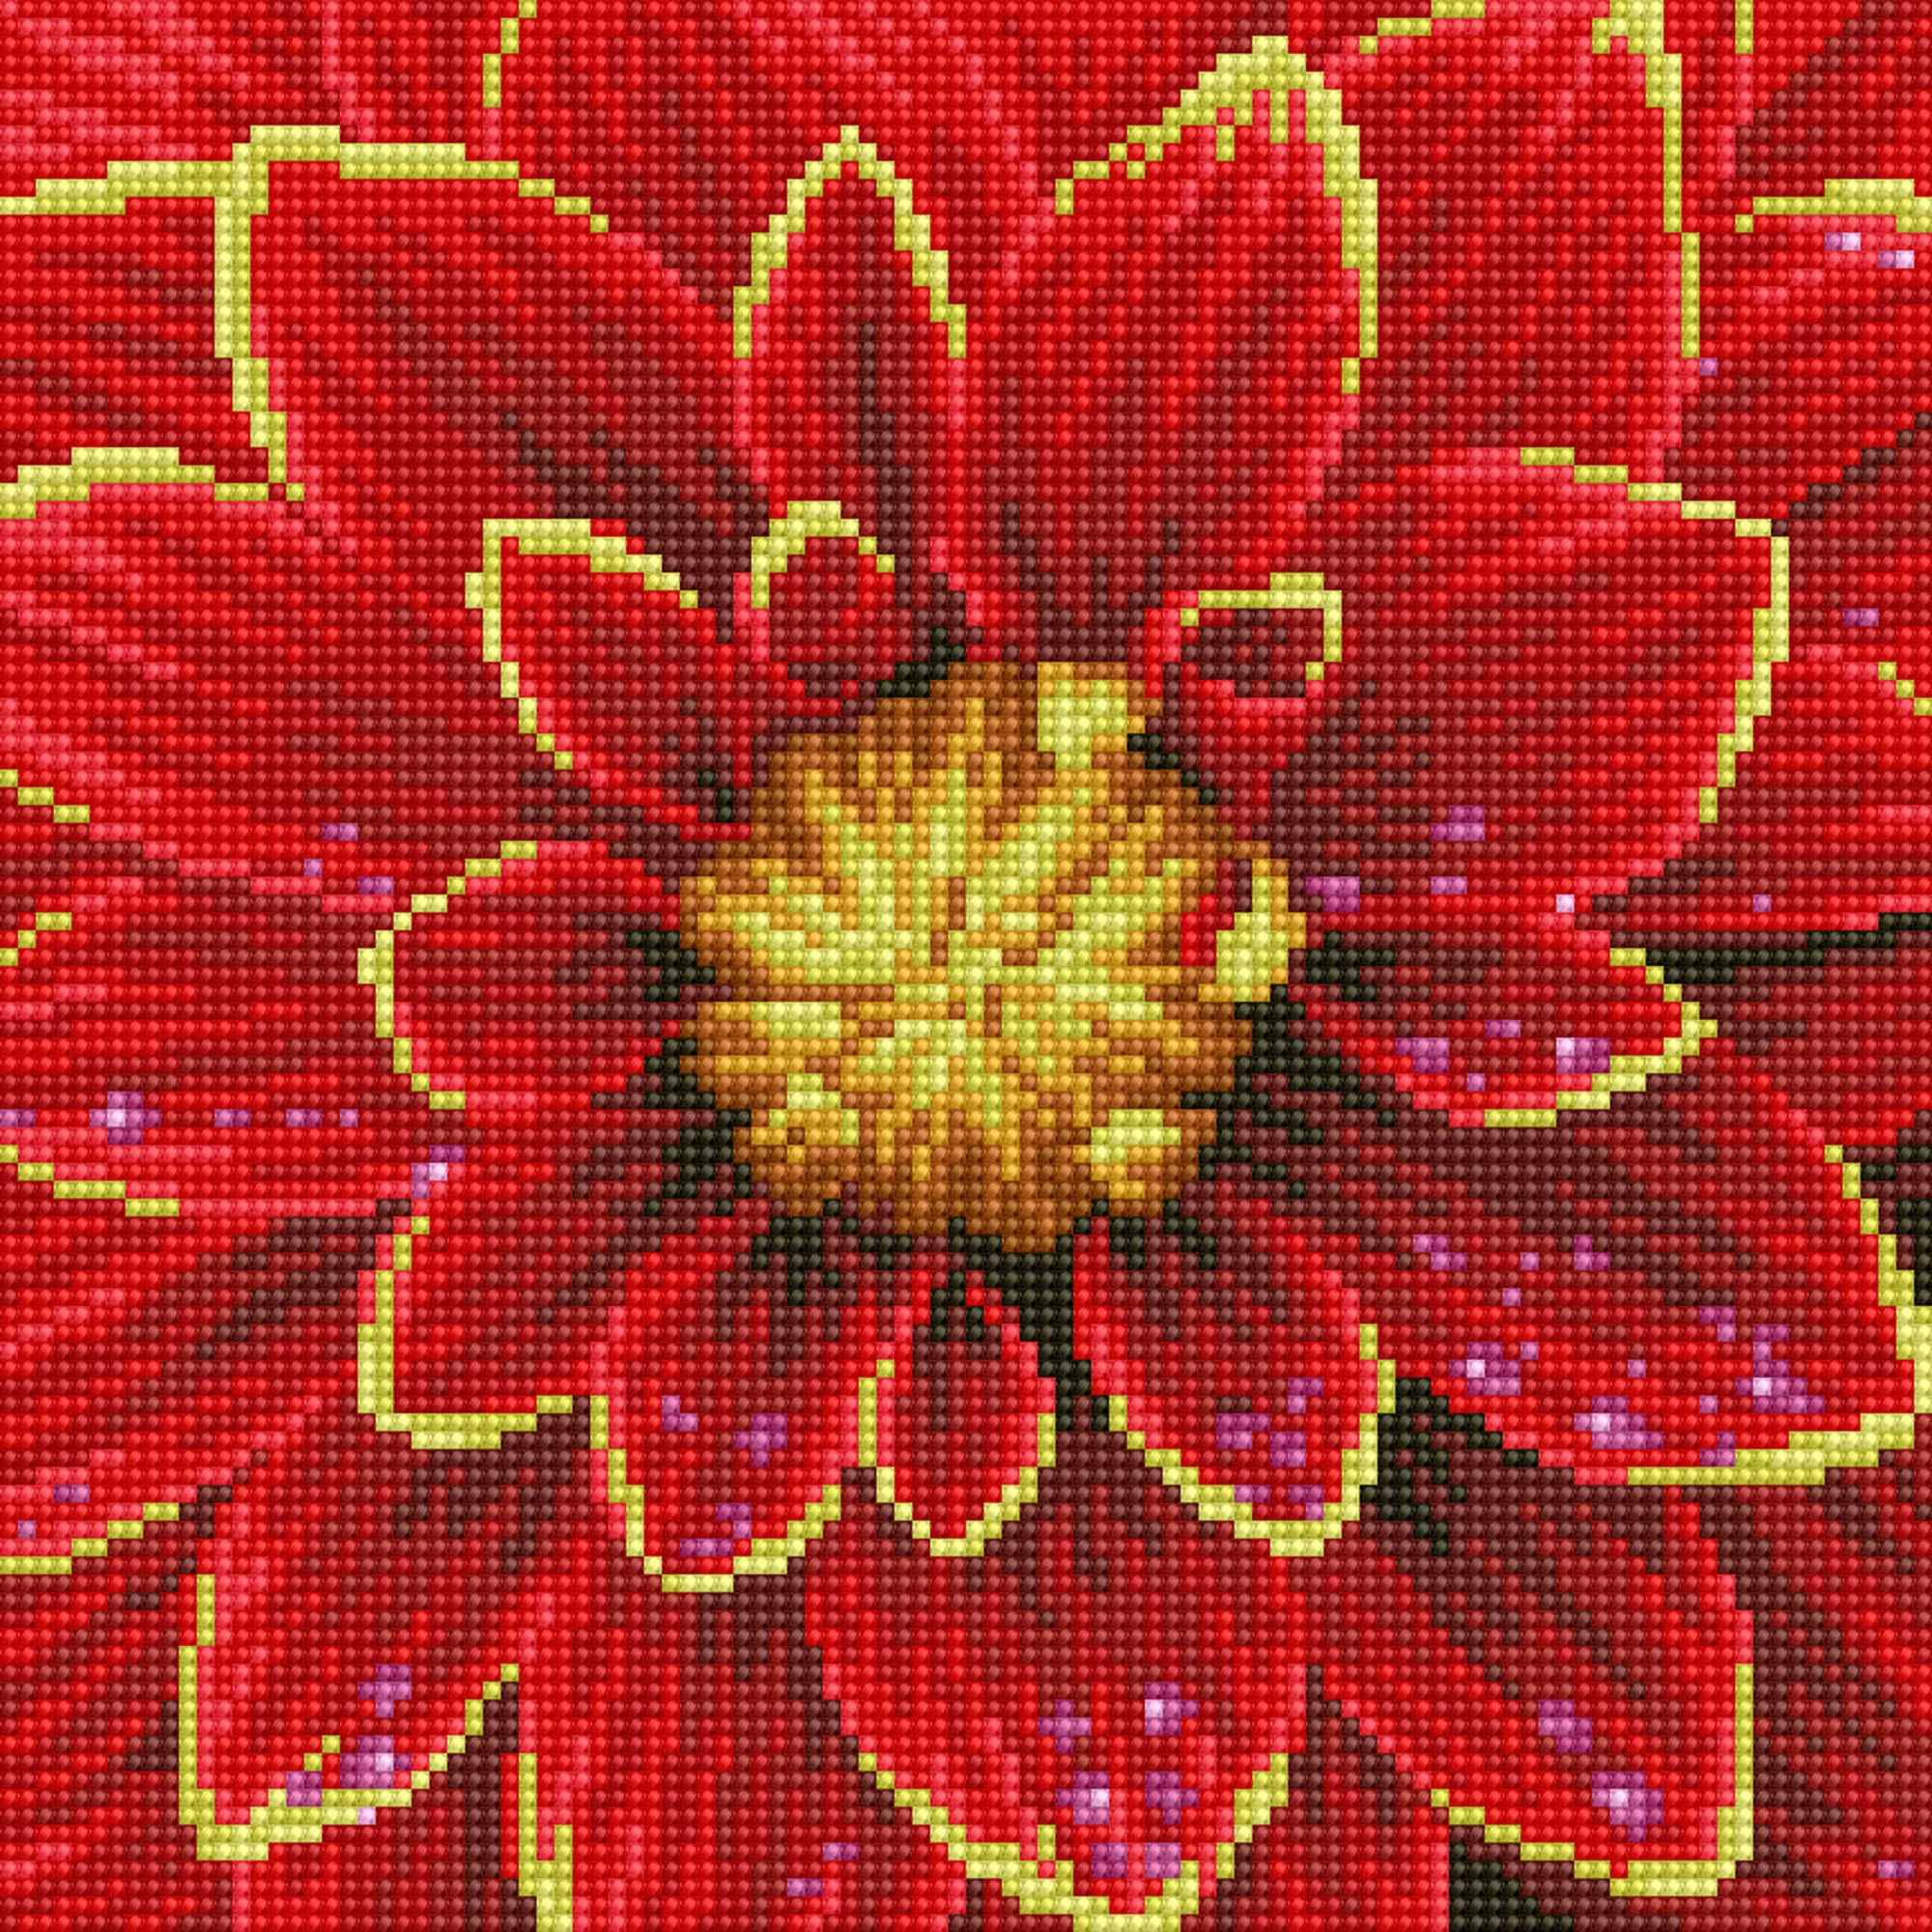 Dahlia diamond painting